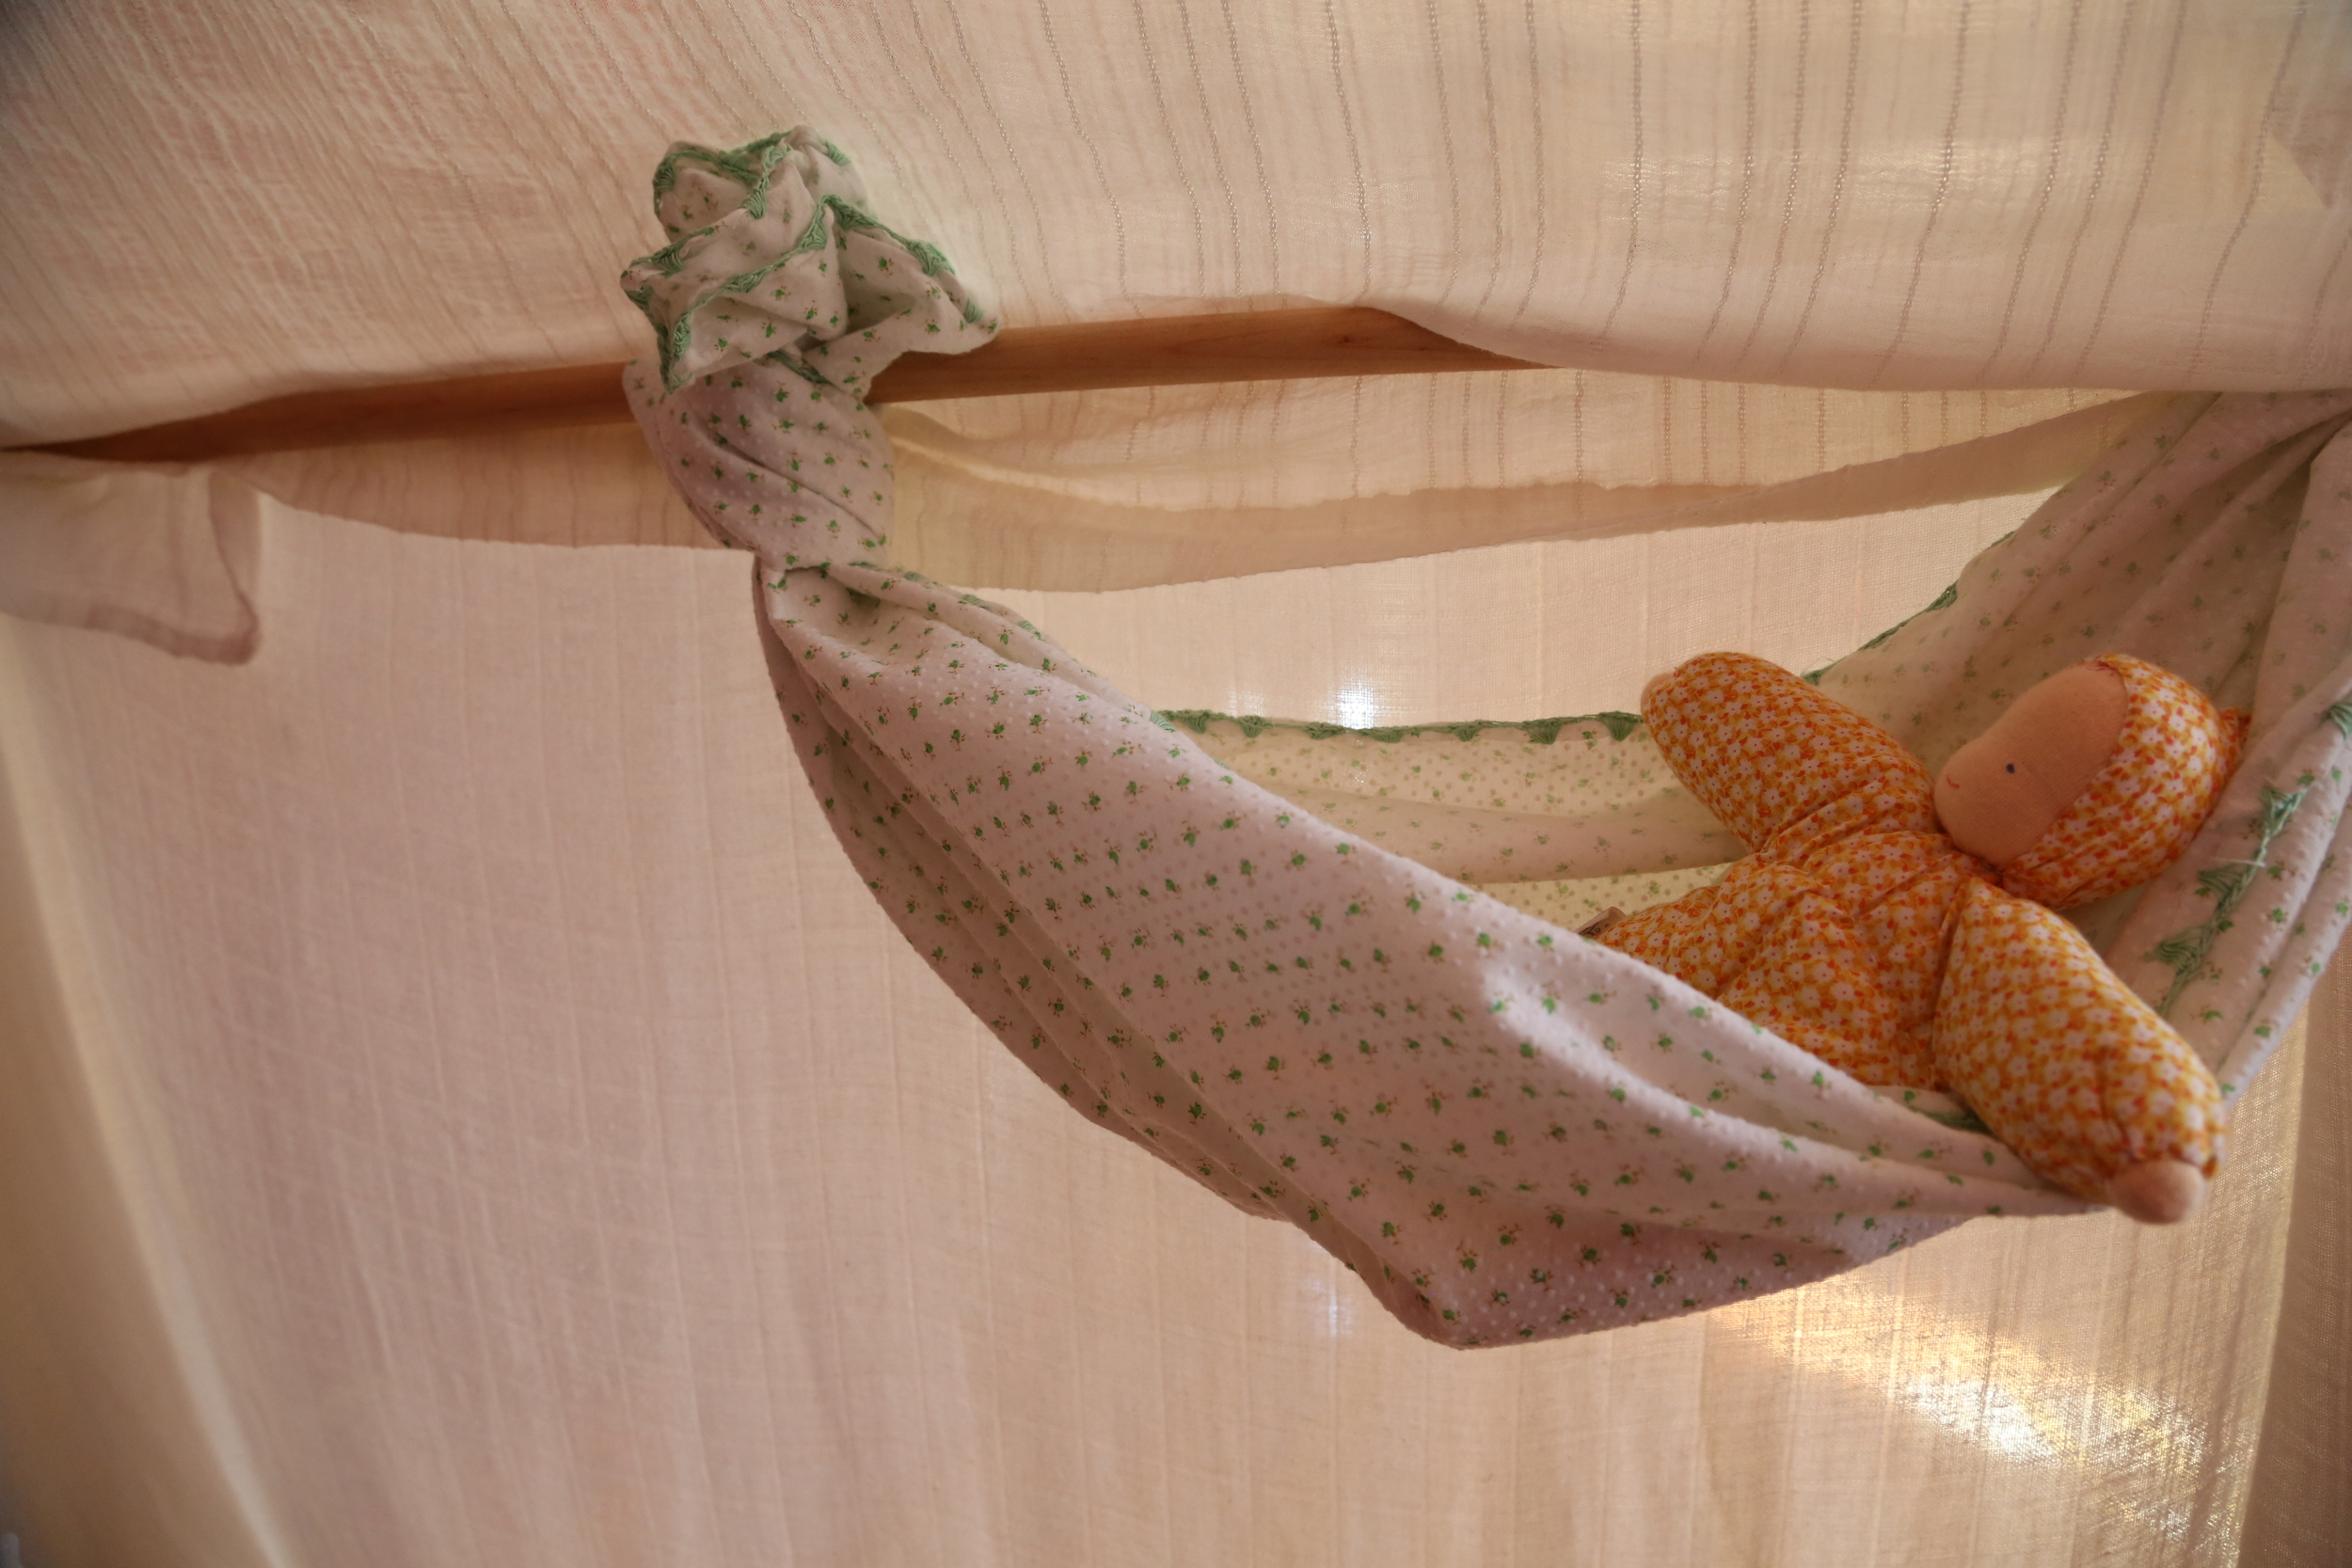 We tied a babydoll hammock in there one day.  Sometimes G puts blocks or other toys in there.